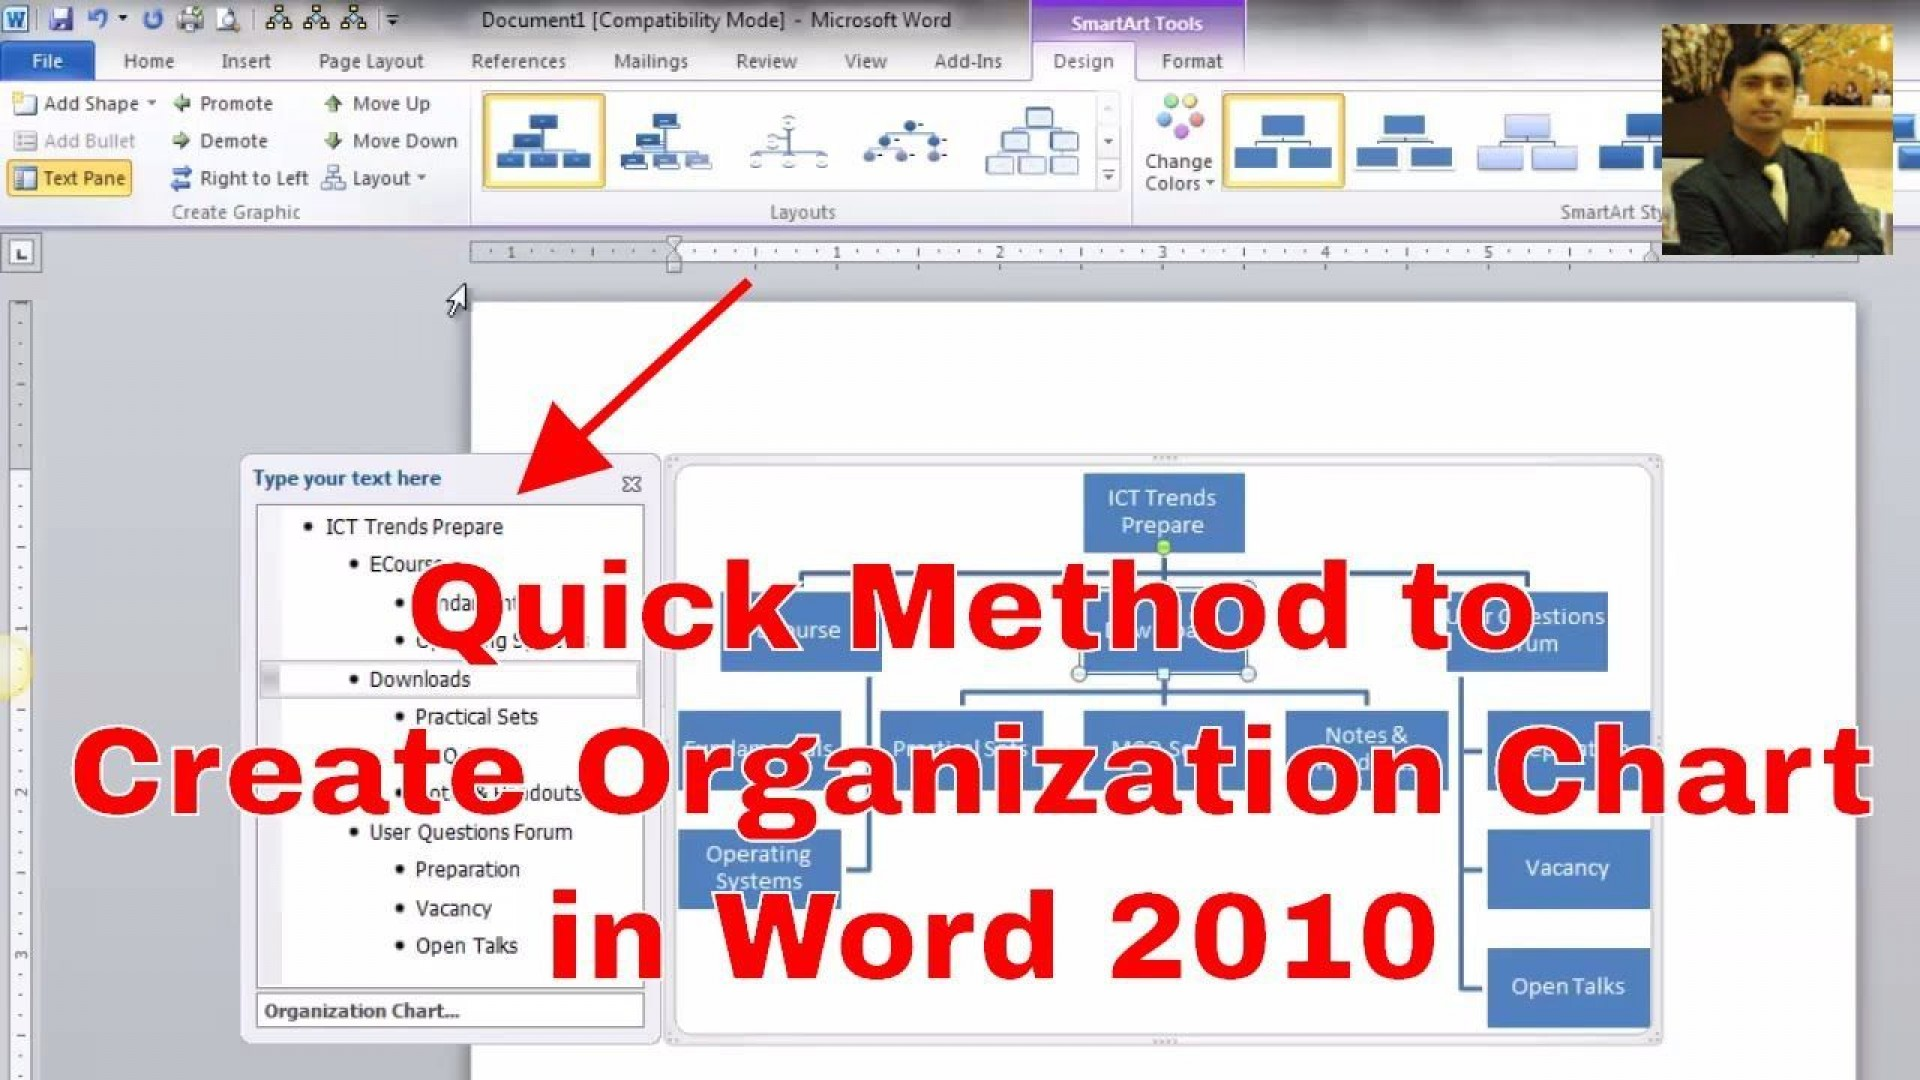 003 Unusual Free Organizational Chart Template Excel 2010 Image 1920